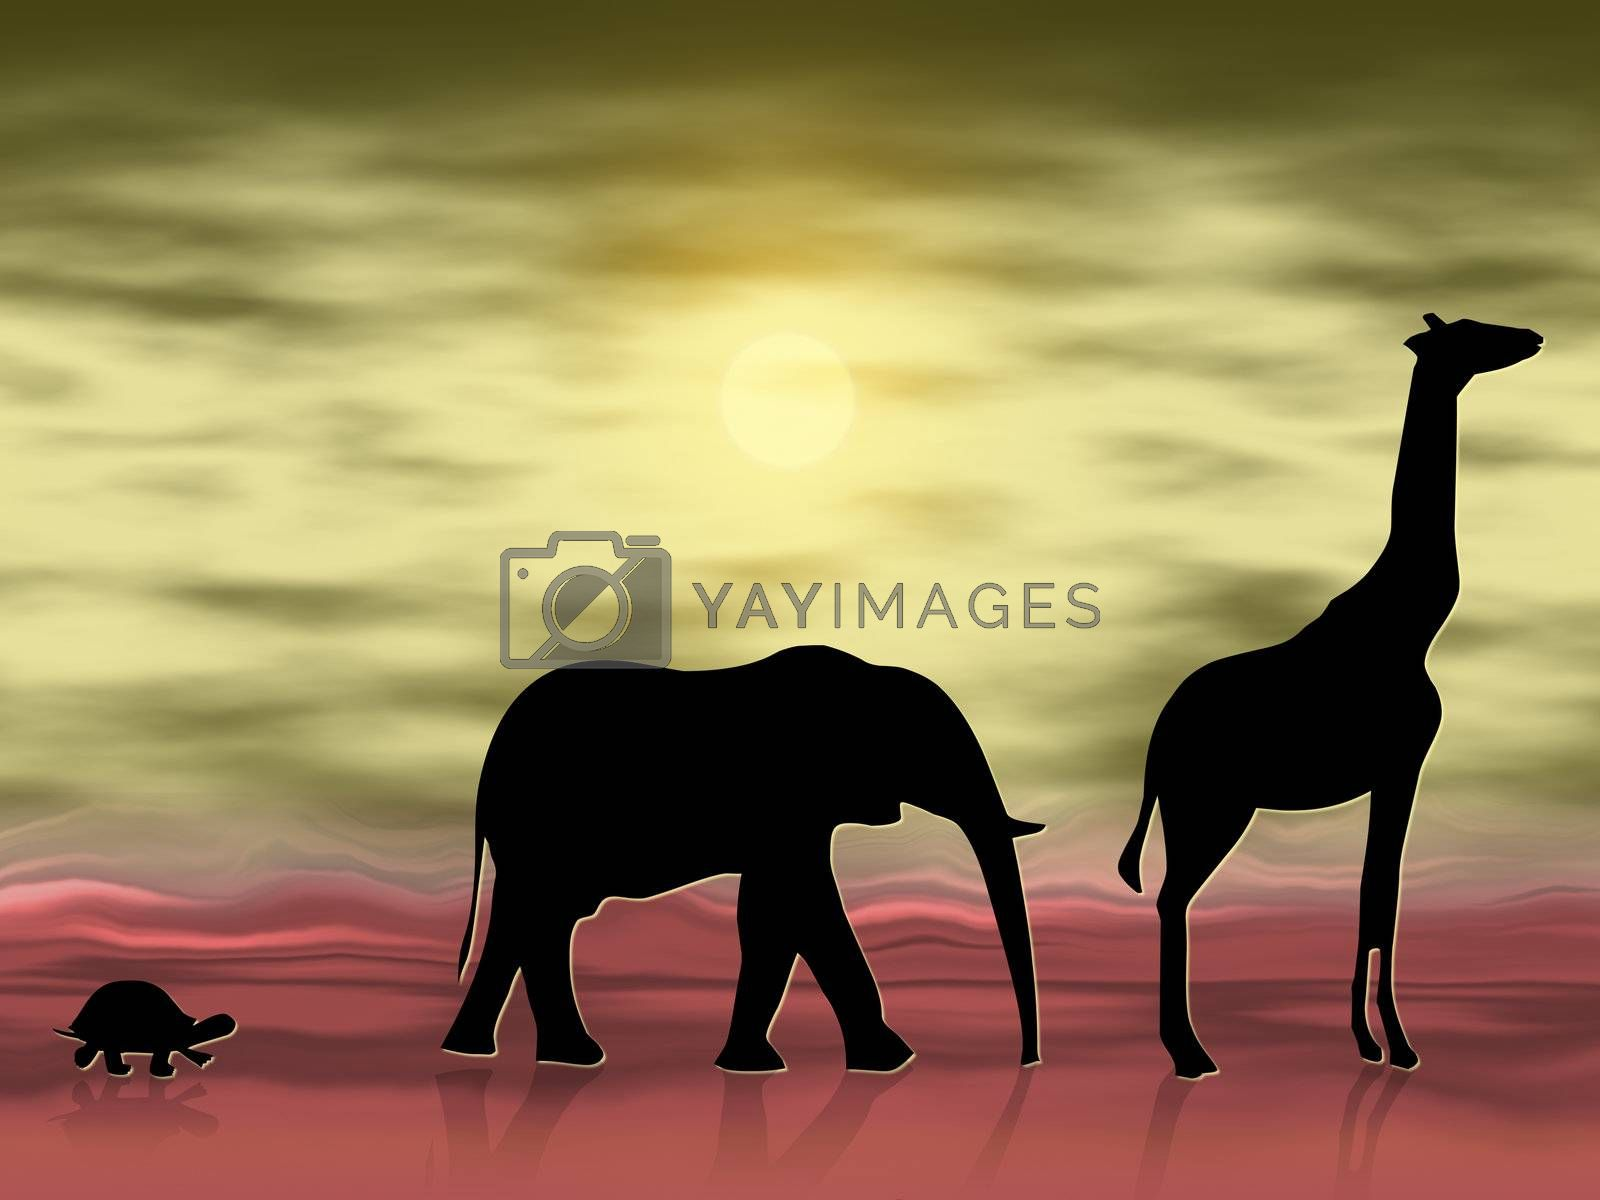 Silhouettes of three animals wandering in the desert